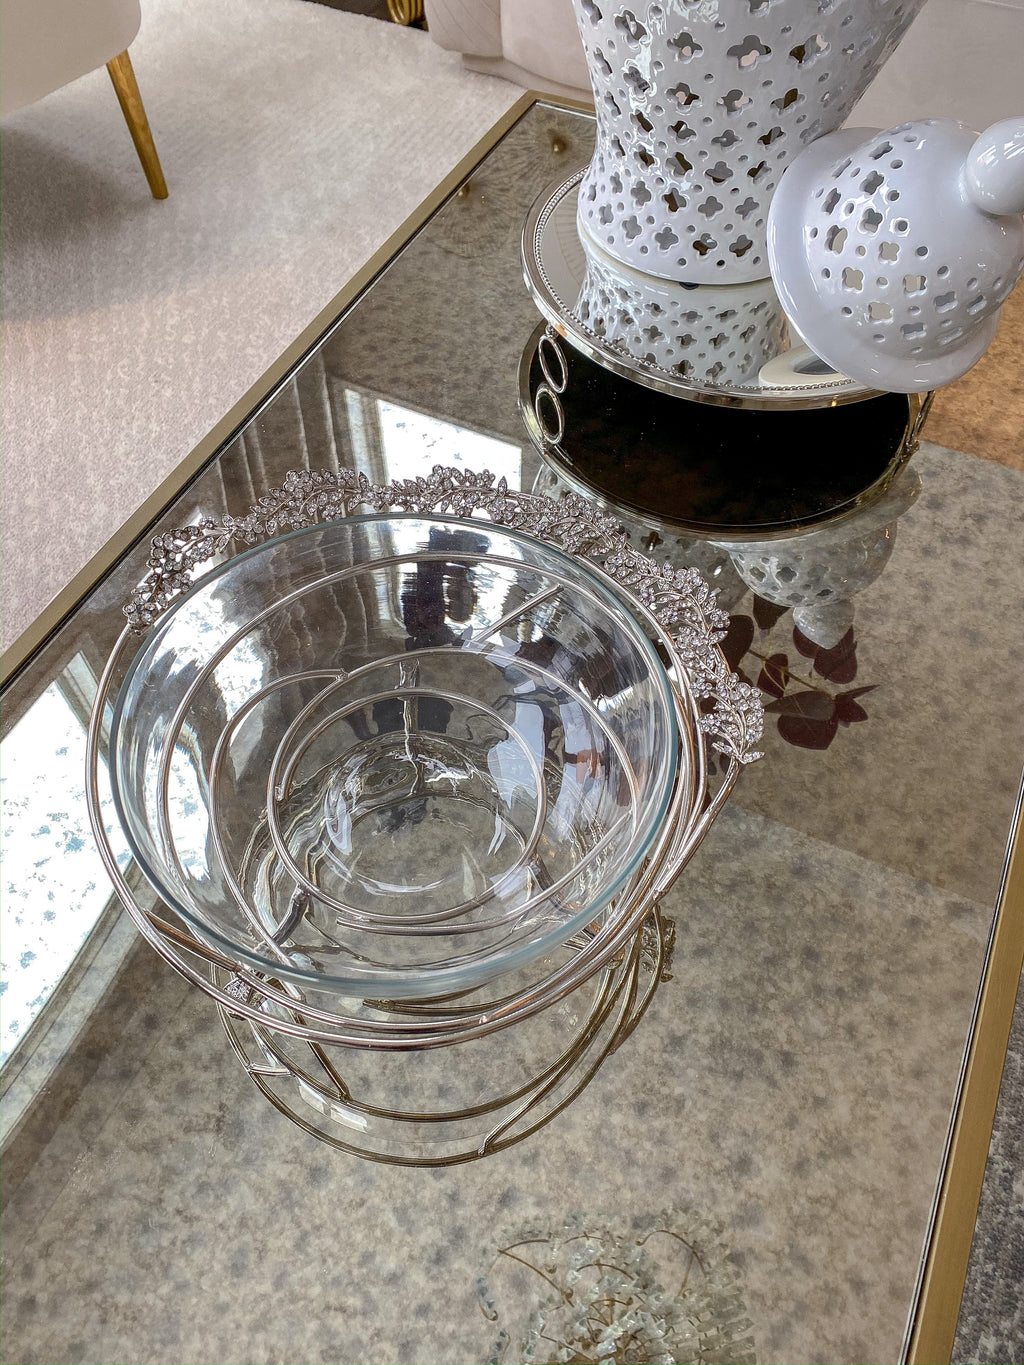 Silver Jeweled Edge Bowl with Glass Insert-Inspire Me! Home Decor